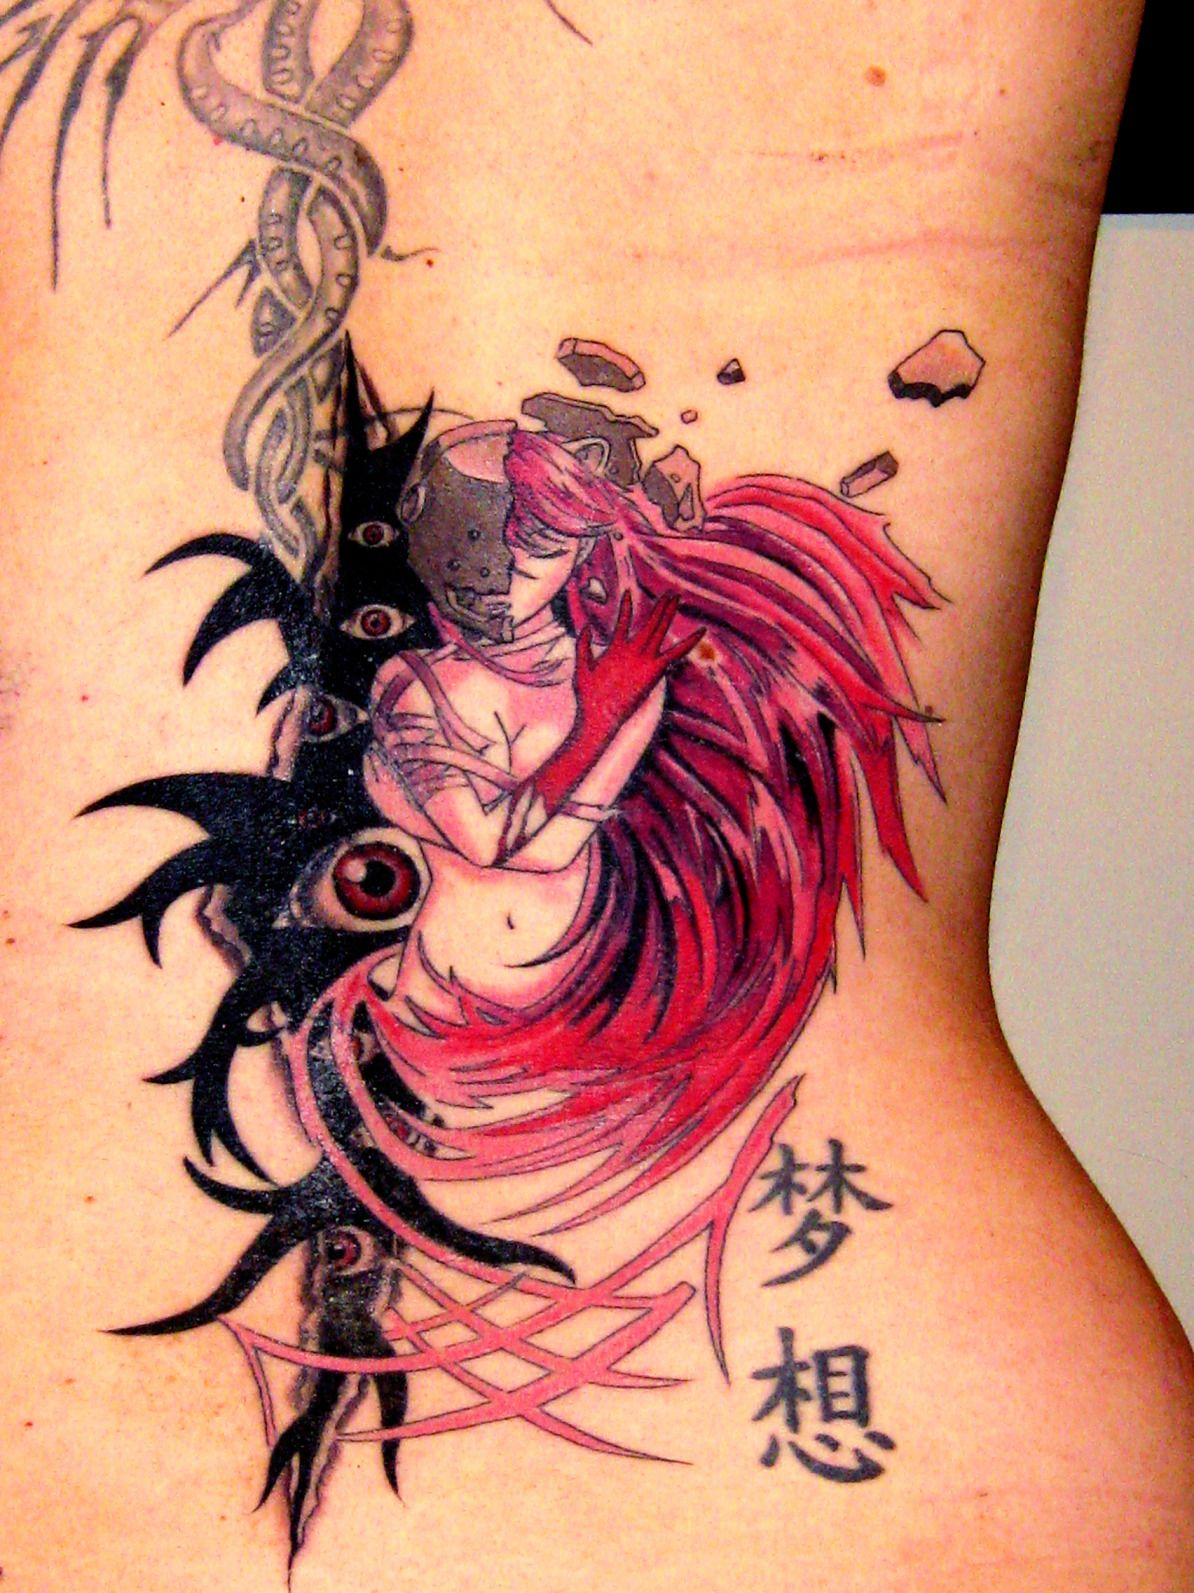 Tattoo elfen lied buscar con google body modification - Fotos de parejas en blanco y negro ...